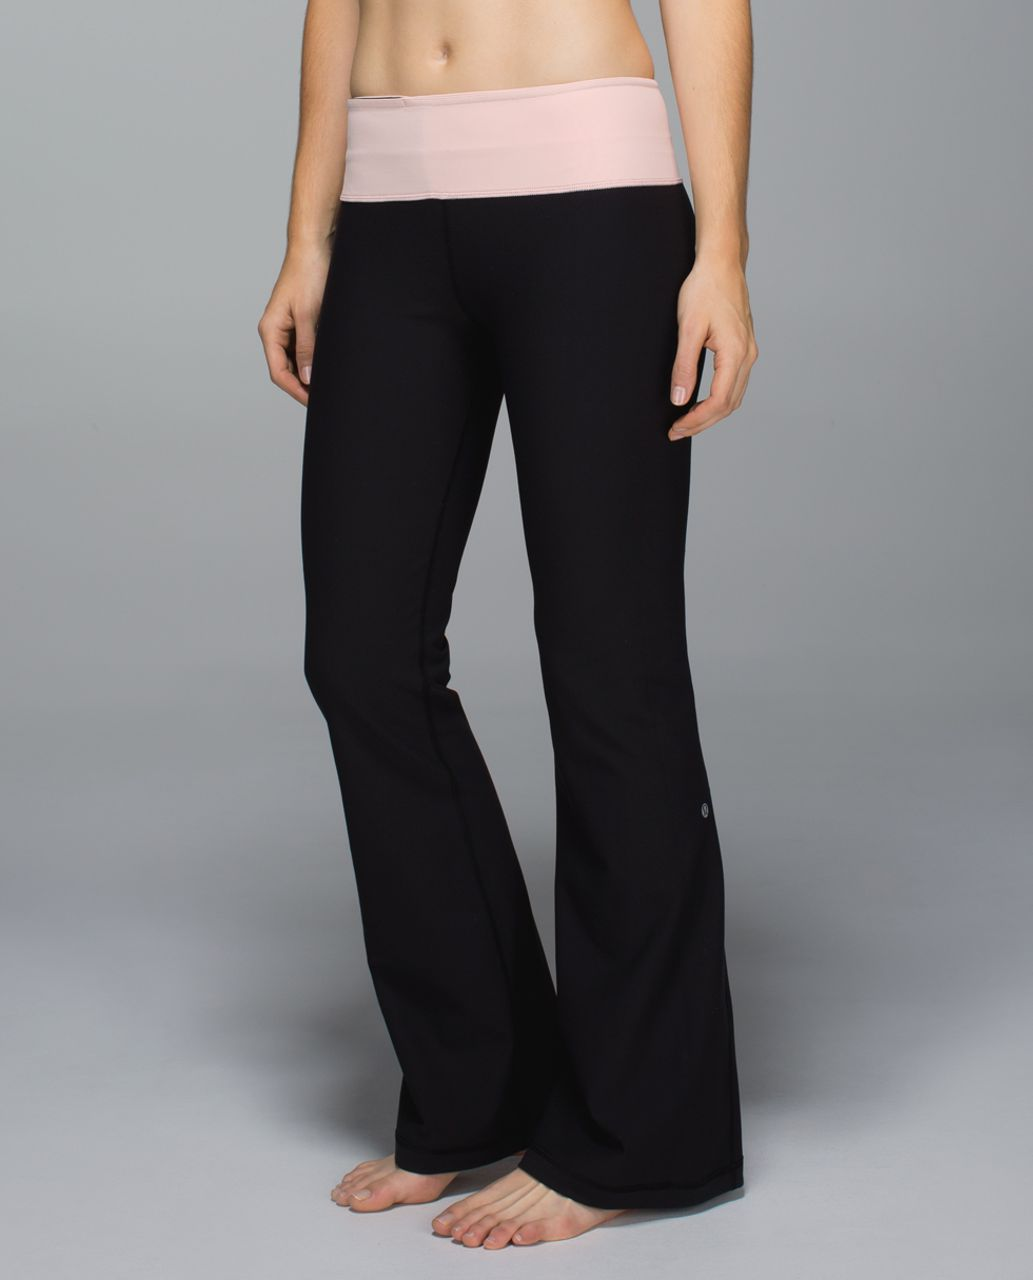 Lululemon Groove Pant *Full-On Luon (Regular) (First Release) - Black / Parfait Pink / Speckle Dot Parfait Pink Black